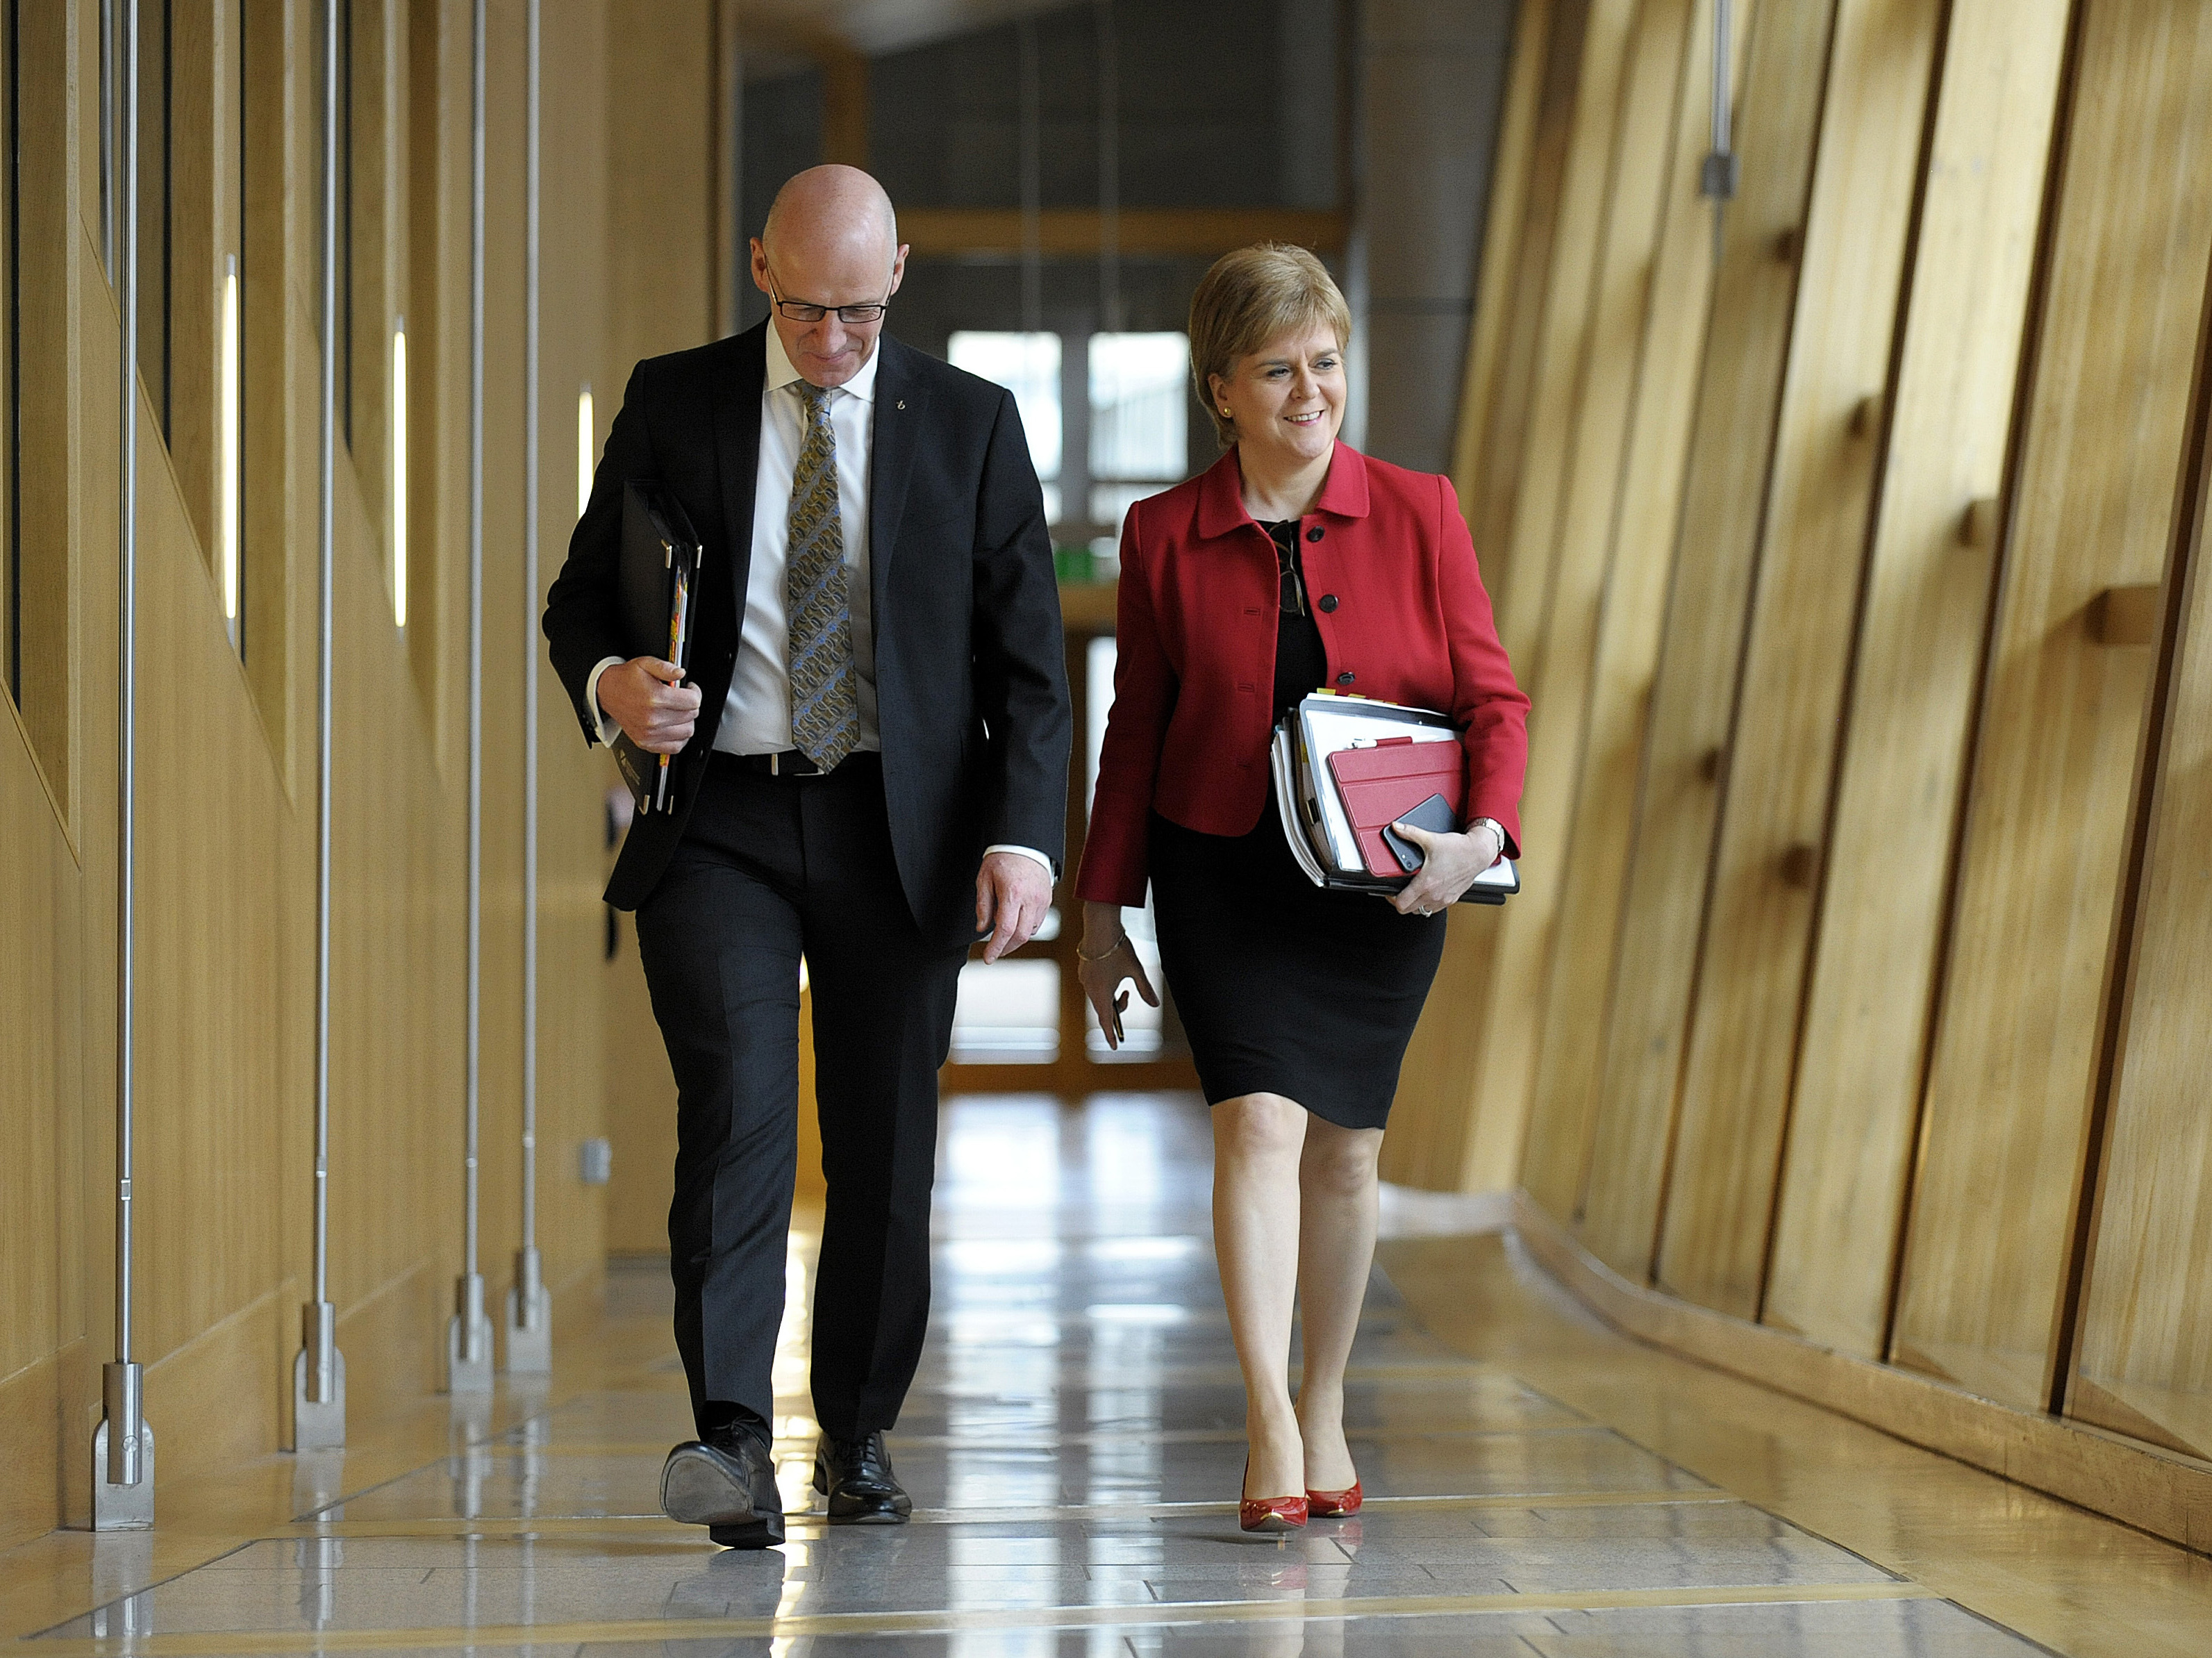 Scottish independence referendum: PM receives letter from Nicola Sturgeon